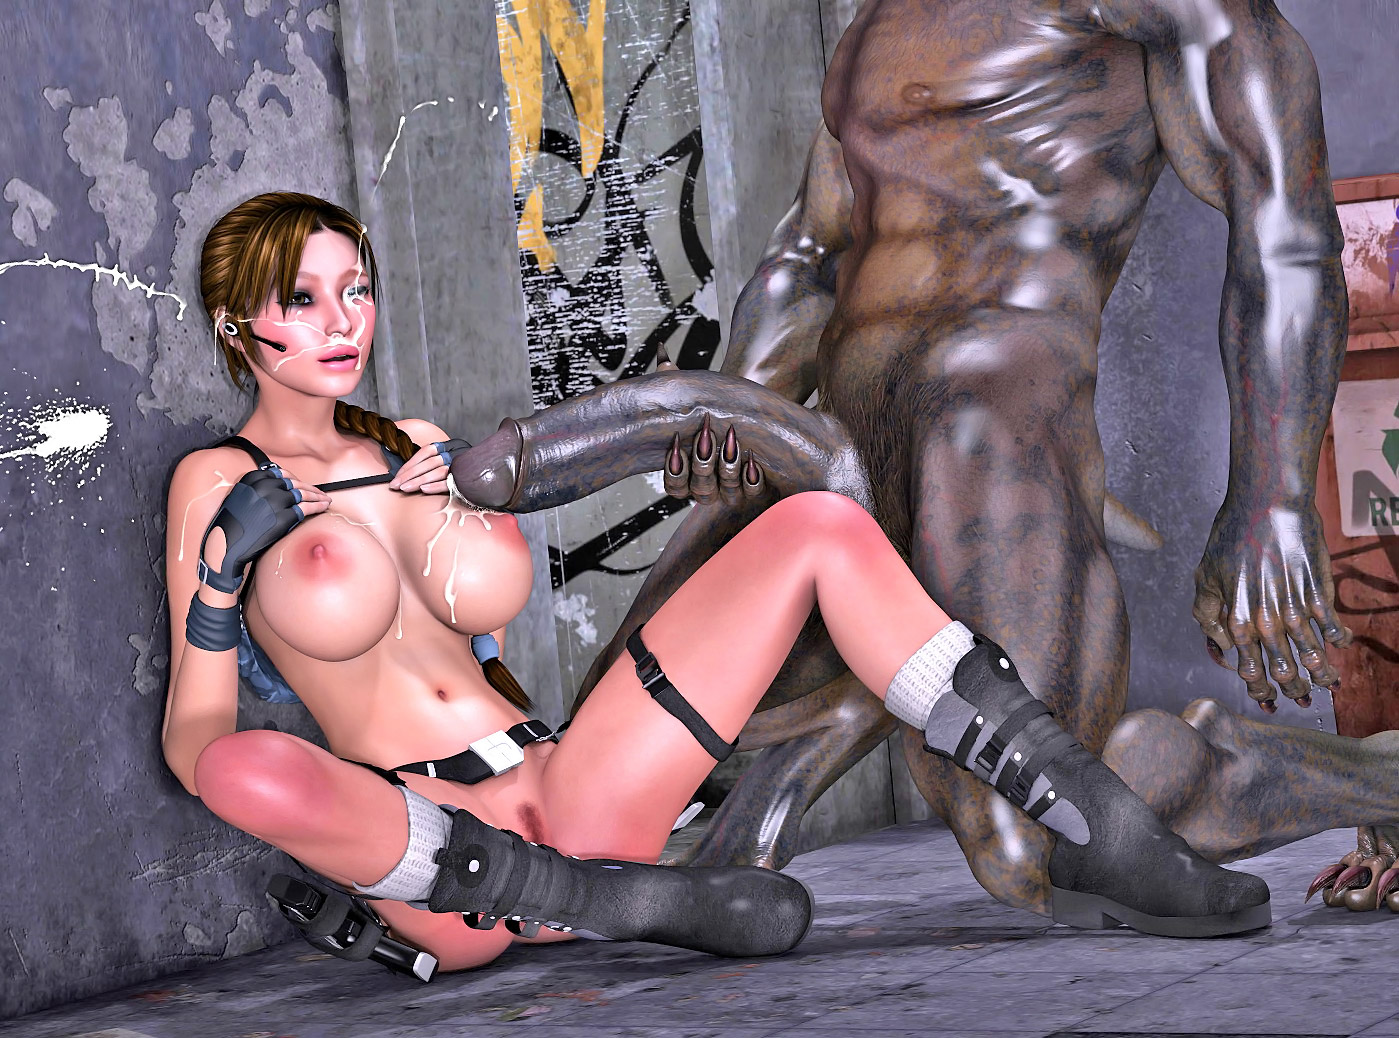 Hot anime porn tomb raider and orcs adult clip